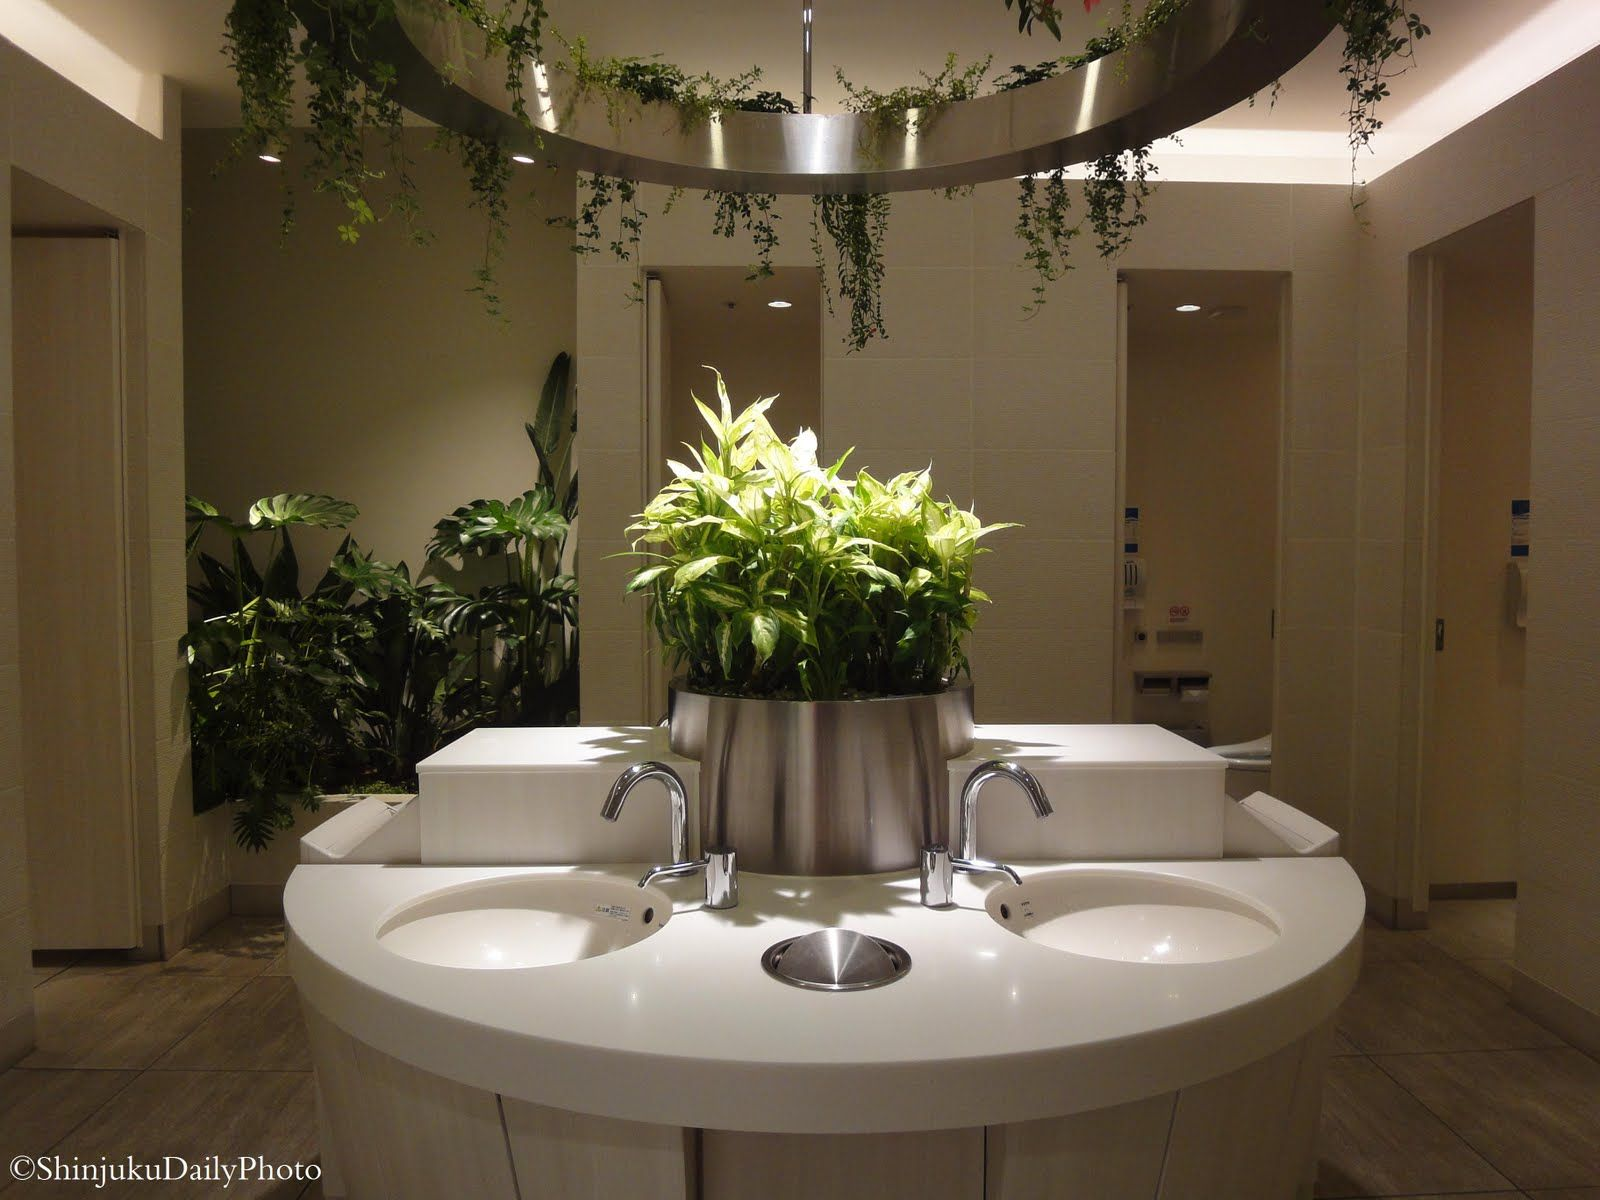 Public Restroom With Plants